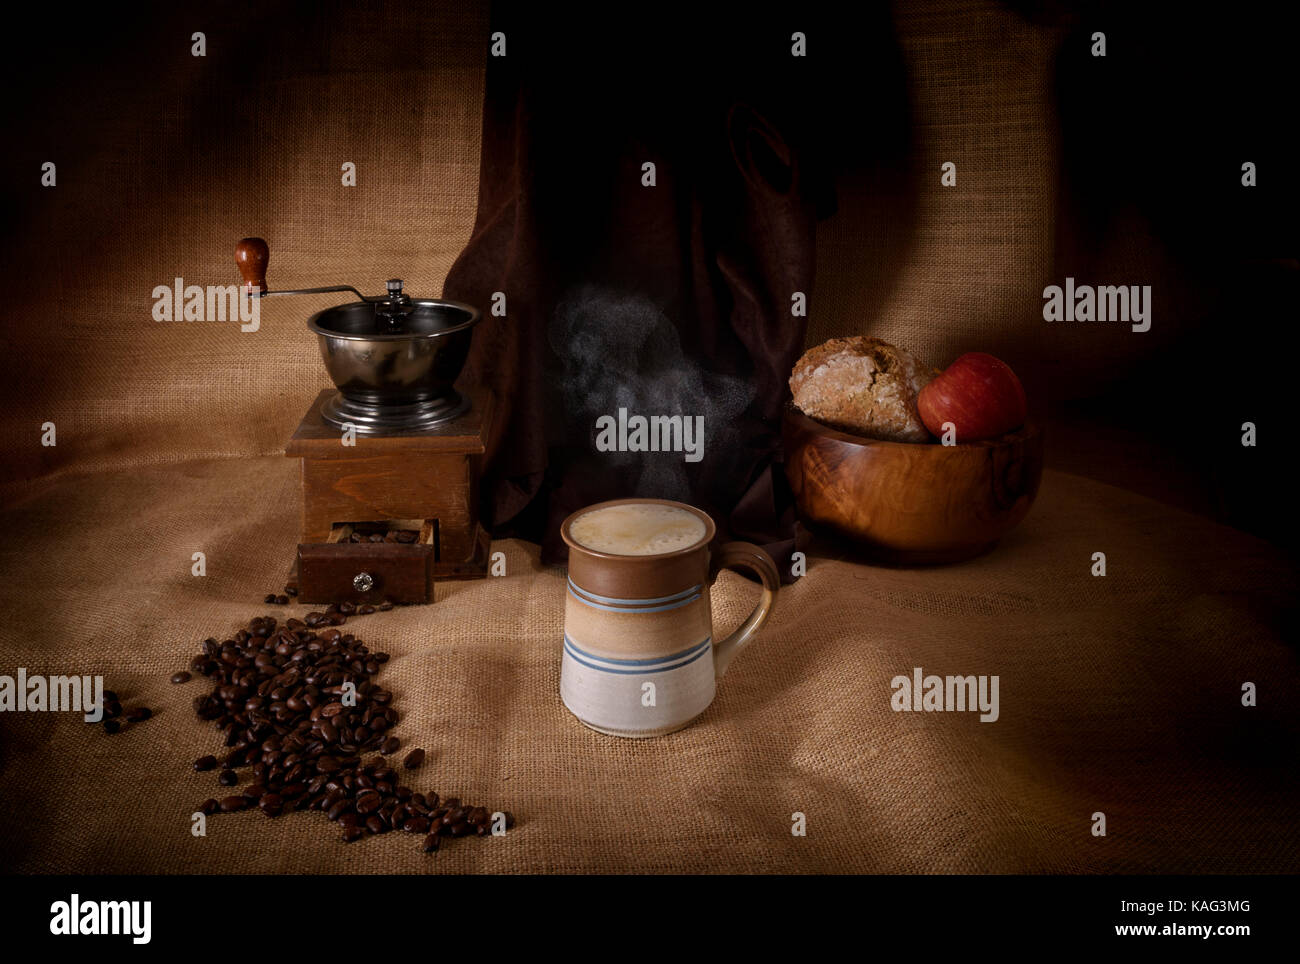 Steaming hot drink of coffee in a mug beside coffee grinder and coffee beans - Stock Image